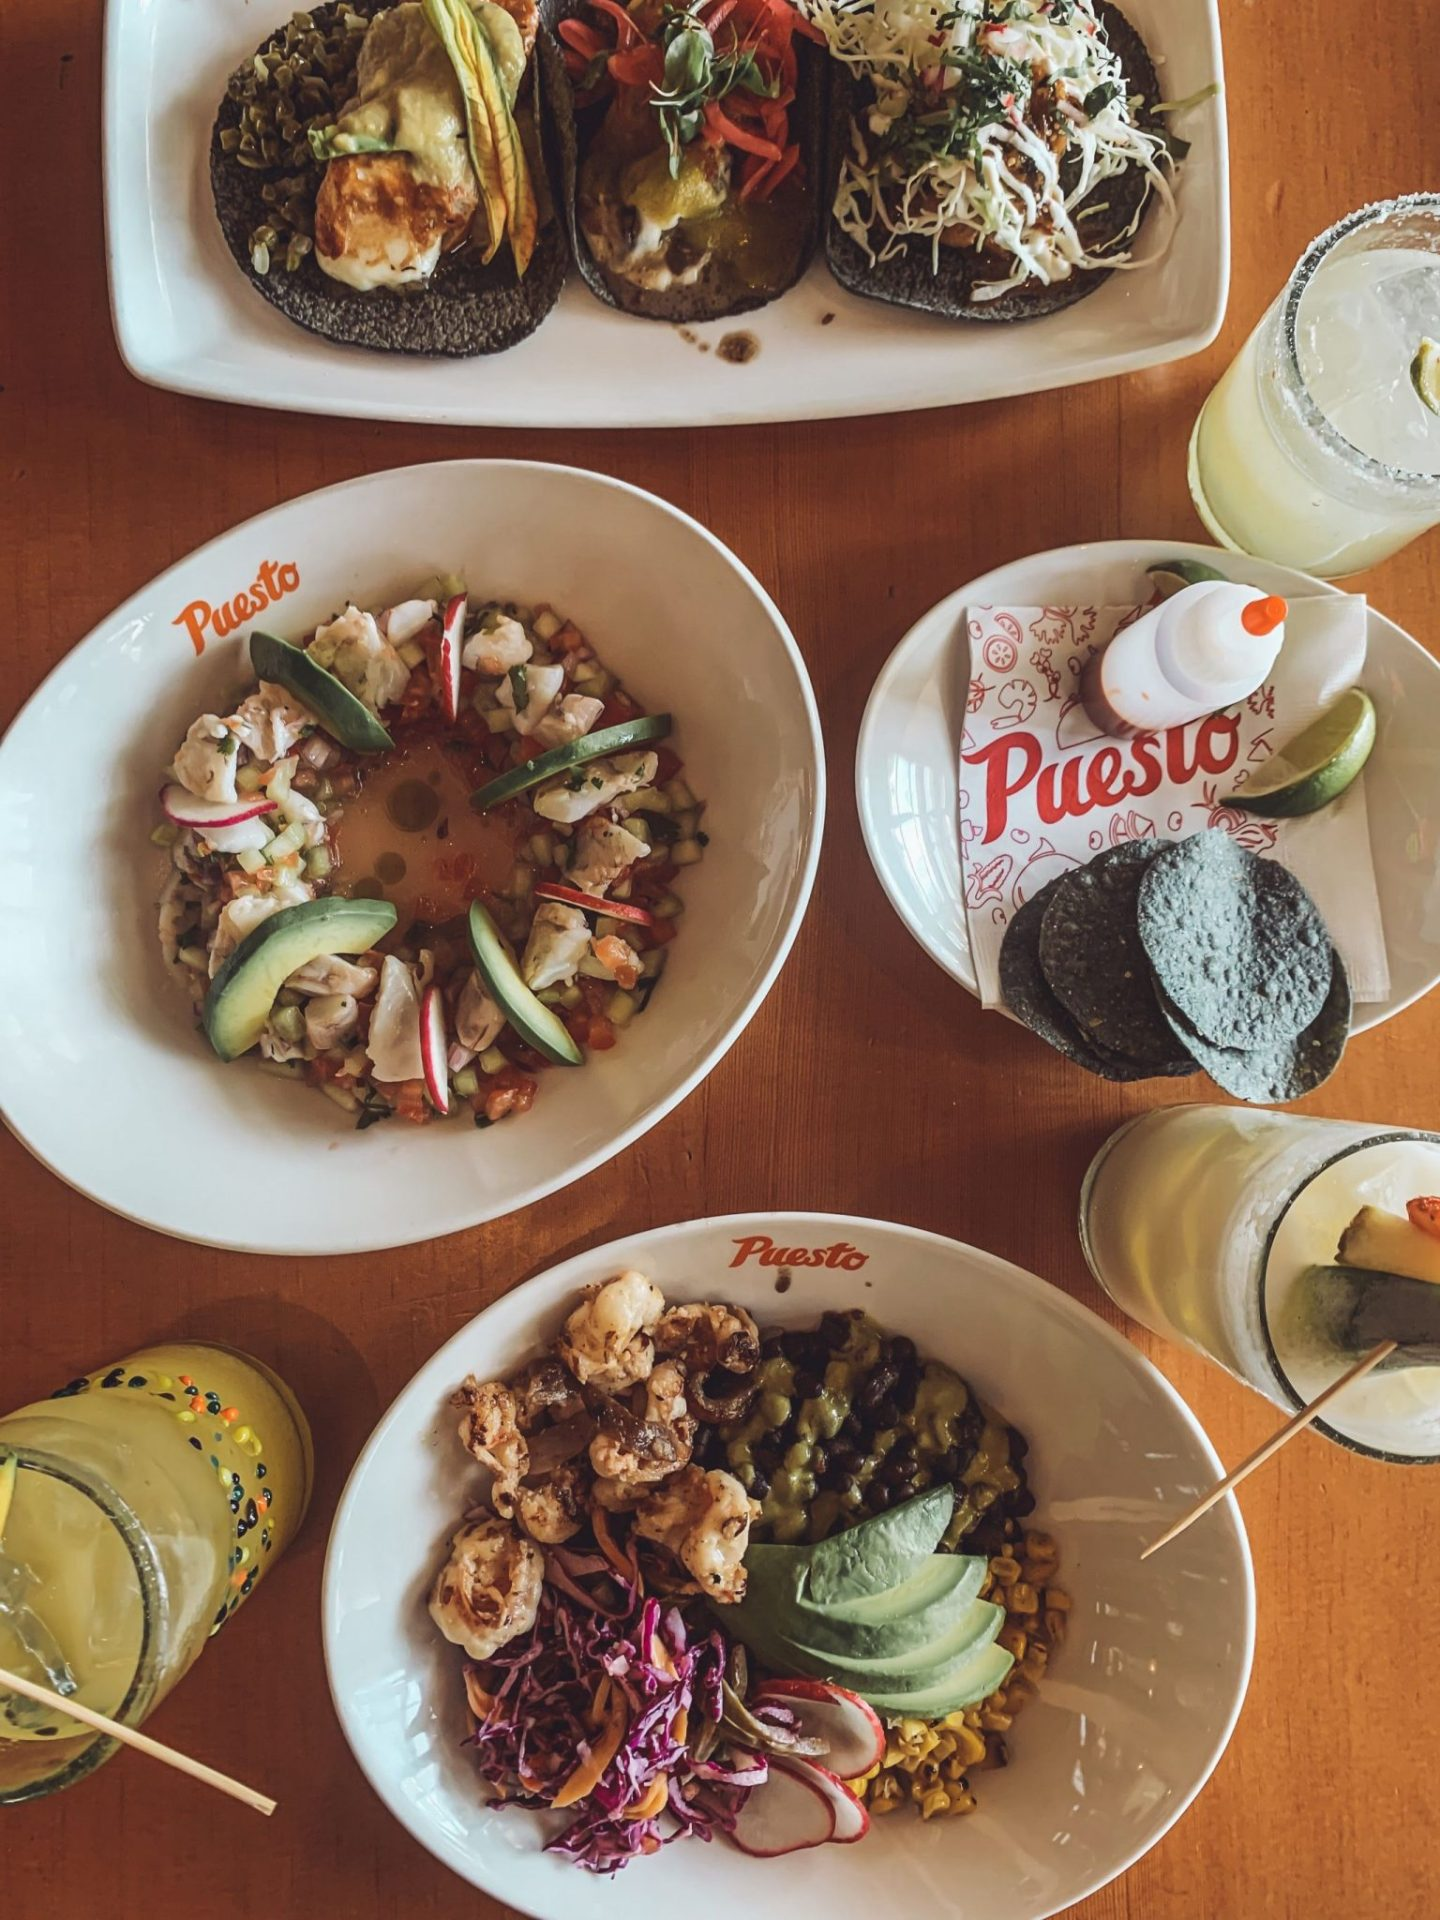 California Vacation Ideas for a Momcation in Orange County by popular Nashville travel blog, Modern Day Moguls: image of food at the Puesto restaurant.